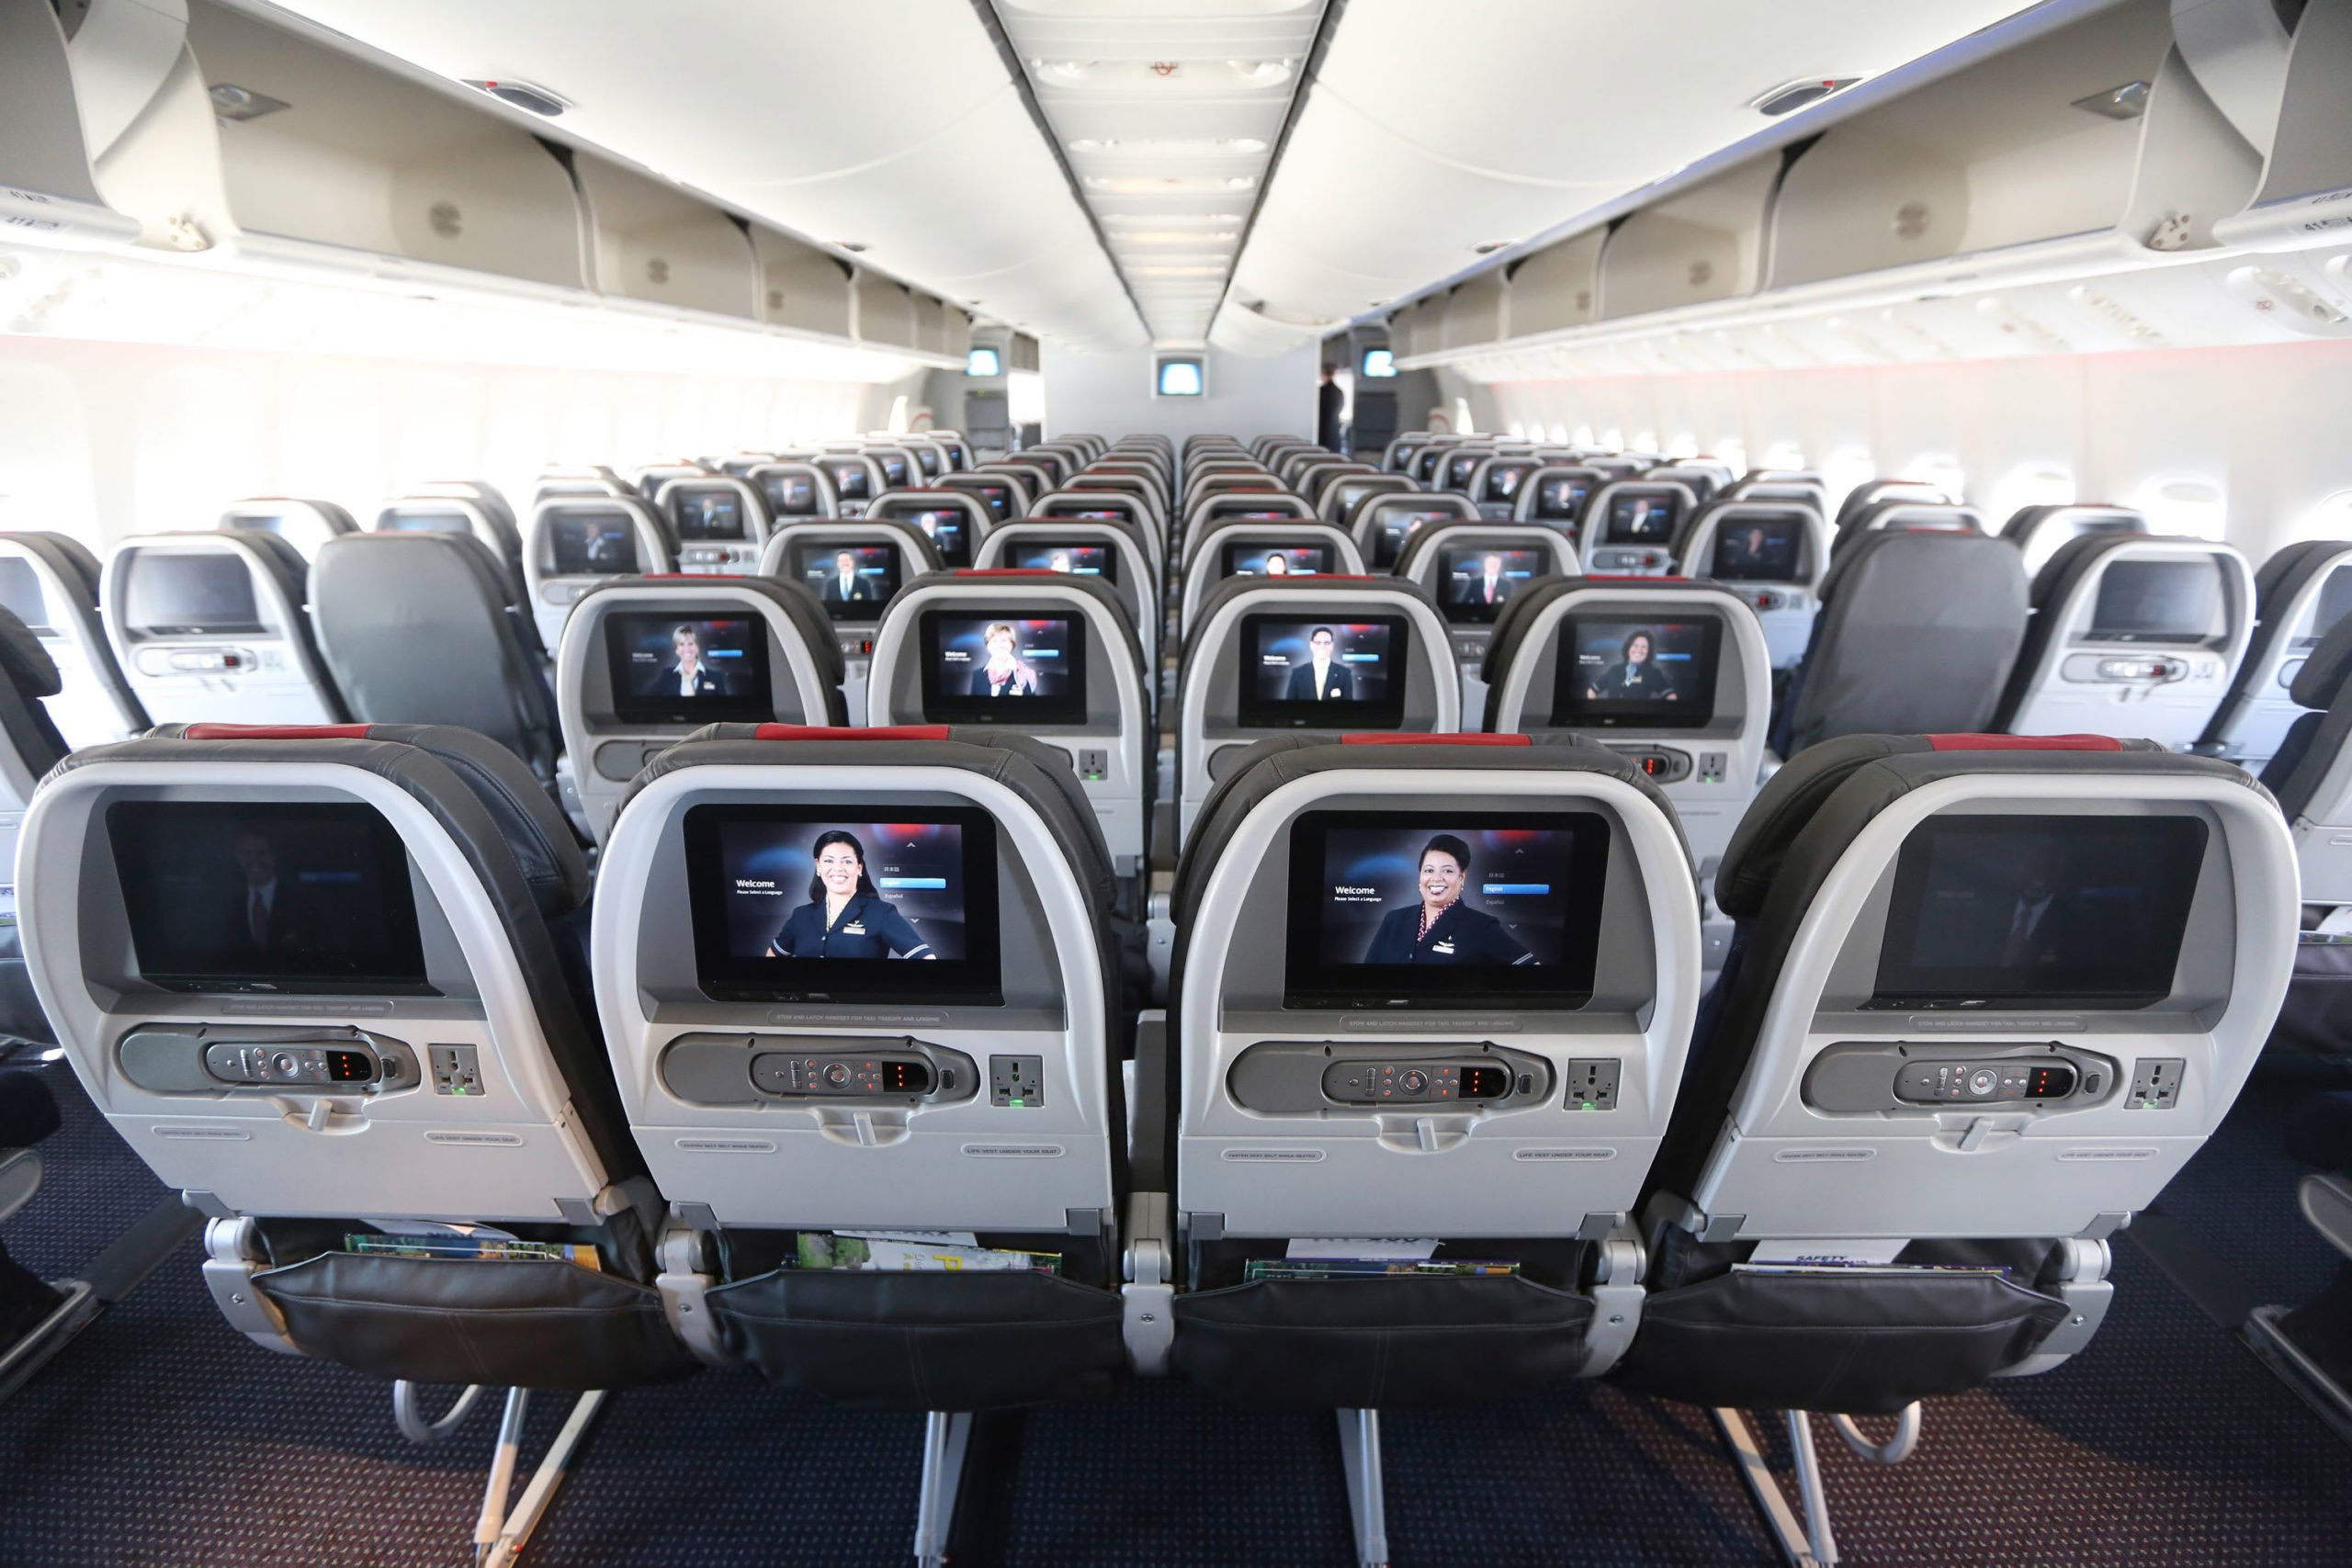 The main cabin of a American Airlines Boeing 777-300ER jet.